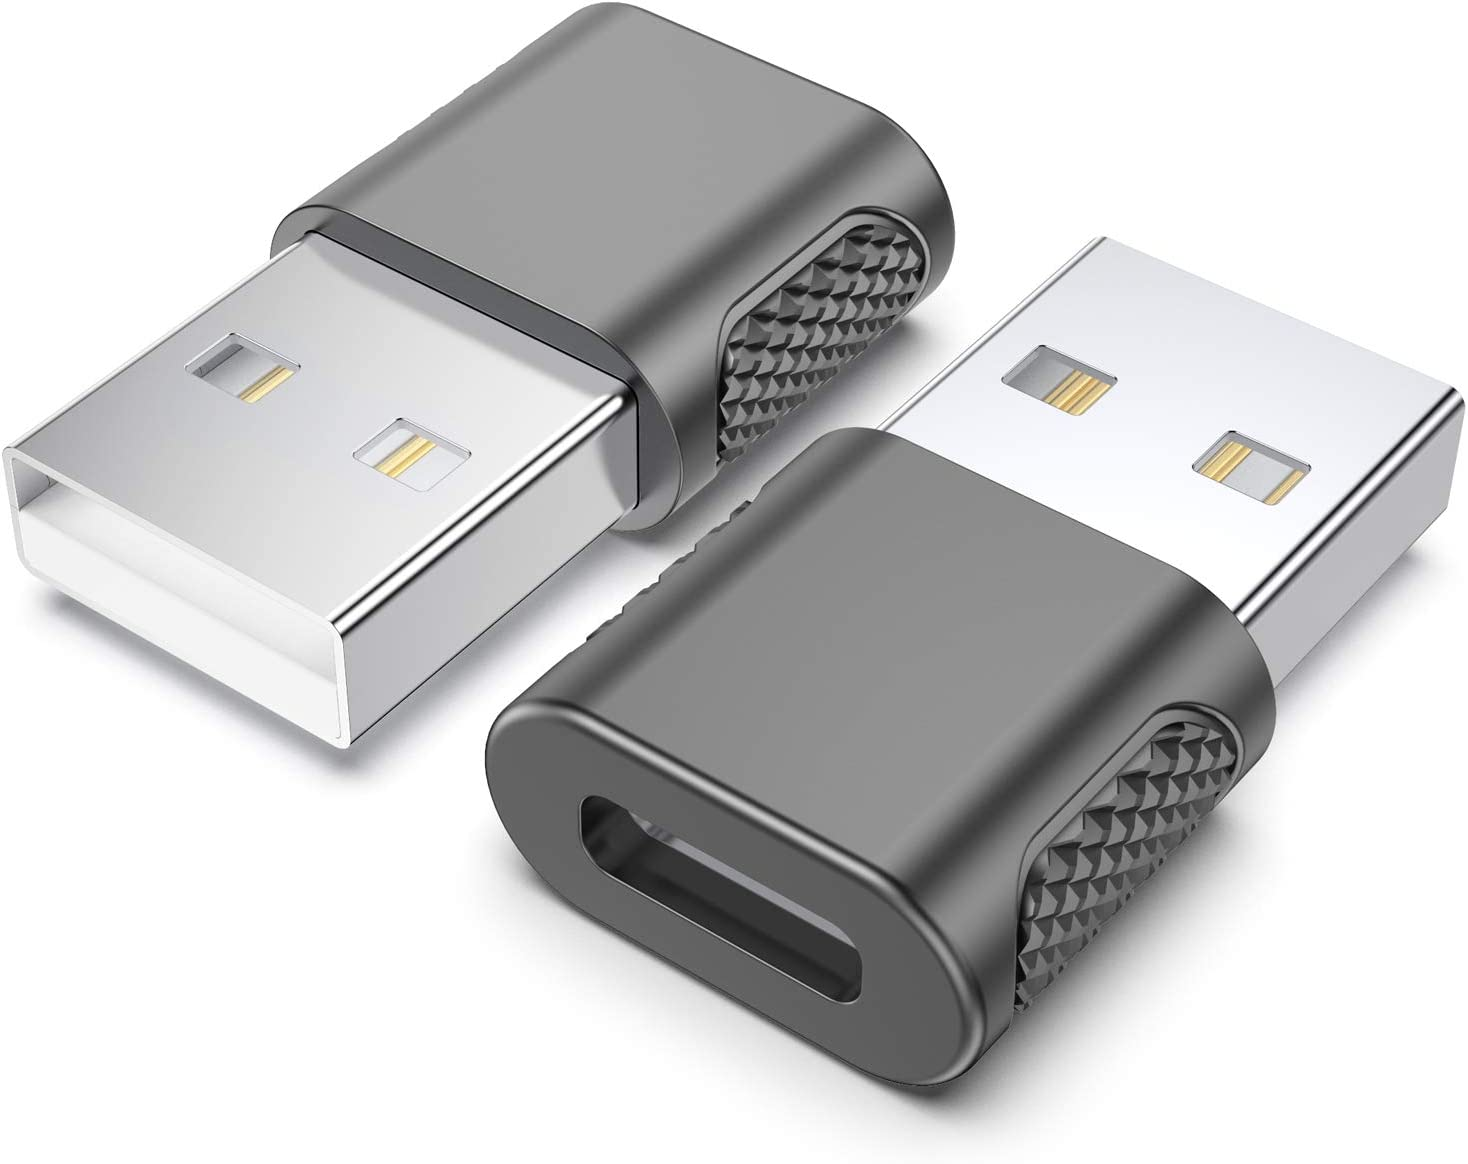 USB C Female to USB Male Adapter (2-Pack),Type C Charging Cord Connect USB A Charger,Compatible with iPhone 12 11 Pro Max,iPad Air/Pro,Samsung Galaxy Note 10 S20 S21 Plus,Google Pixel 5 4 3 2 XL